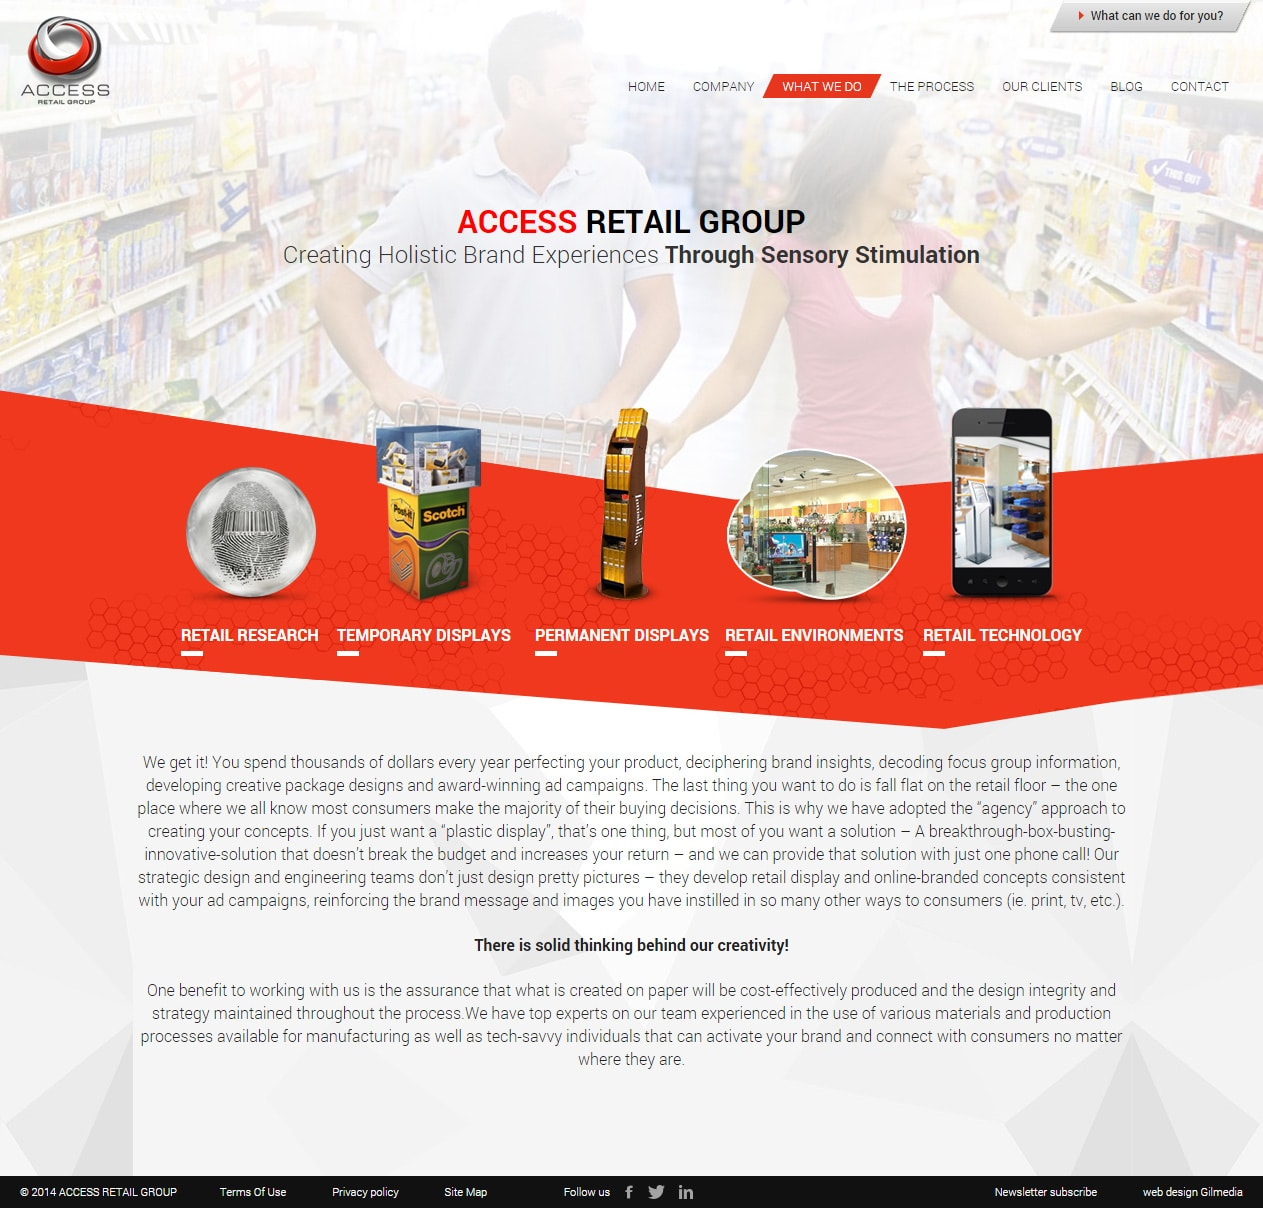 Access Retail Group What We Do